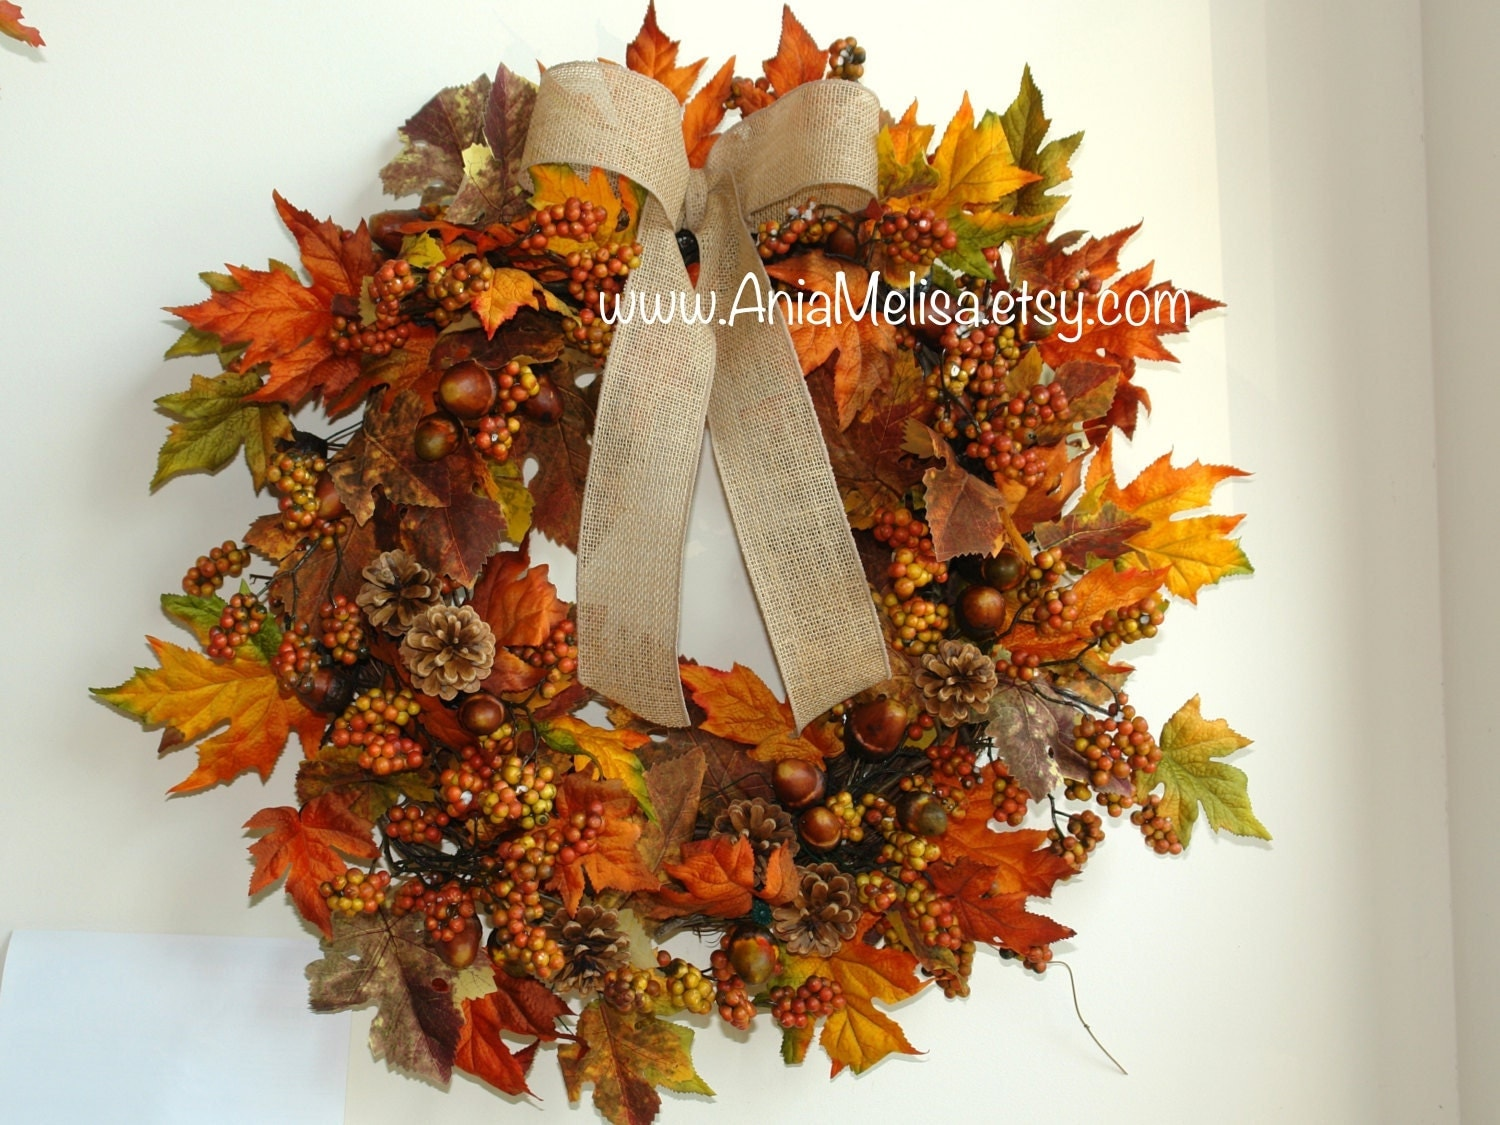 Fall wreath fall wreaths autumn wreaths front door wreaths Fall autumn door wreaths